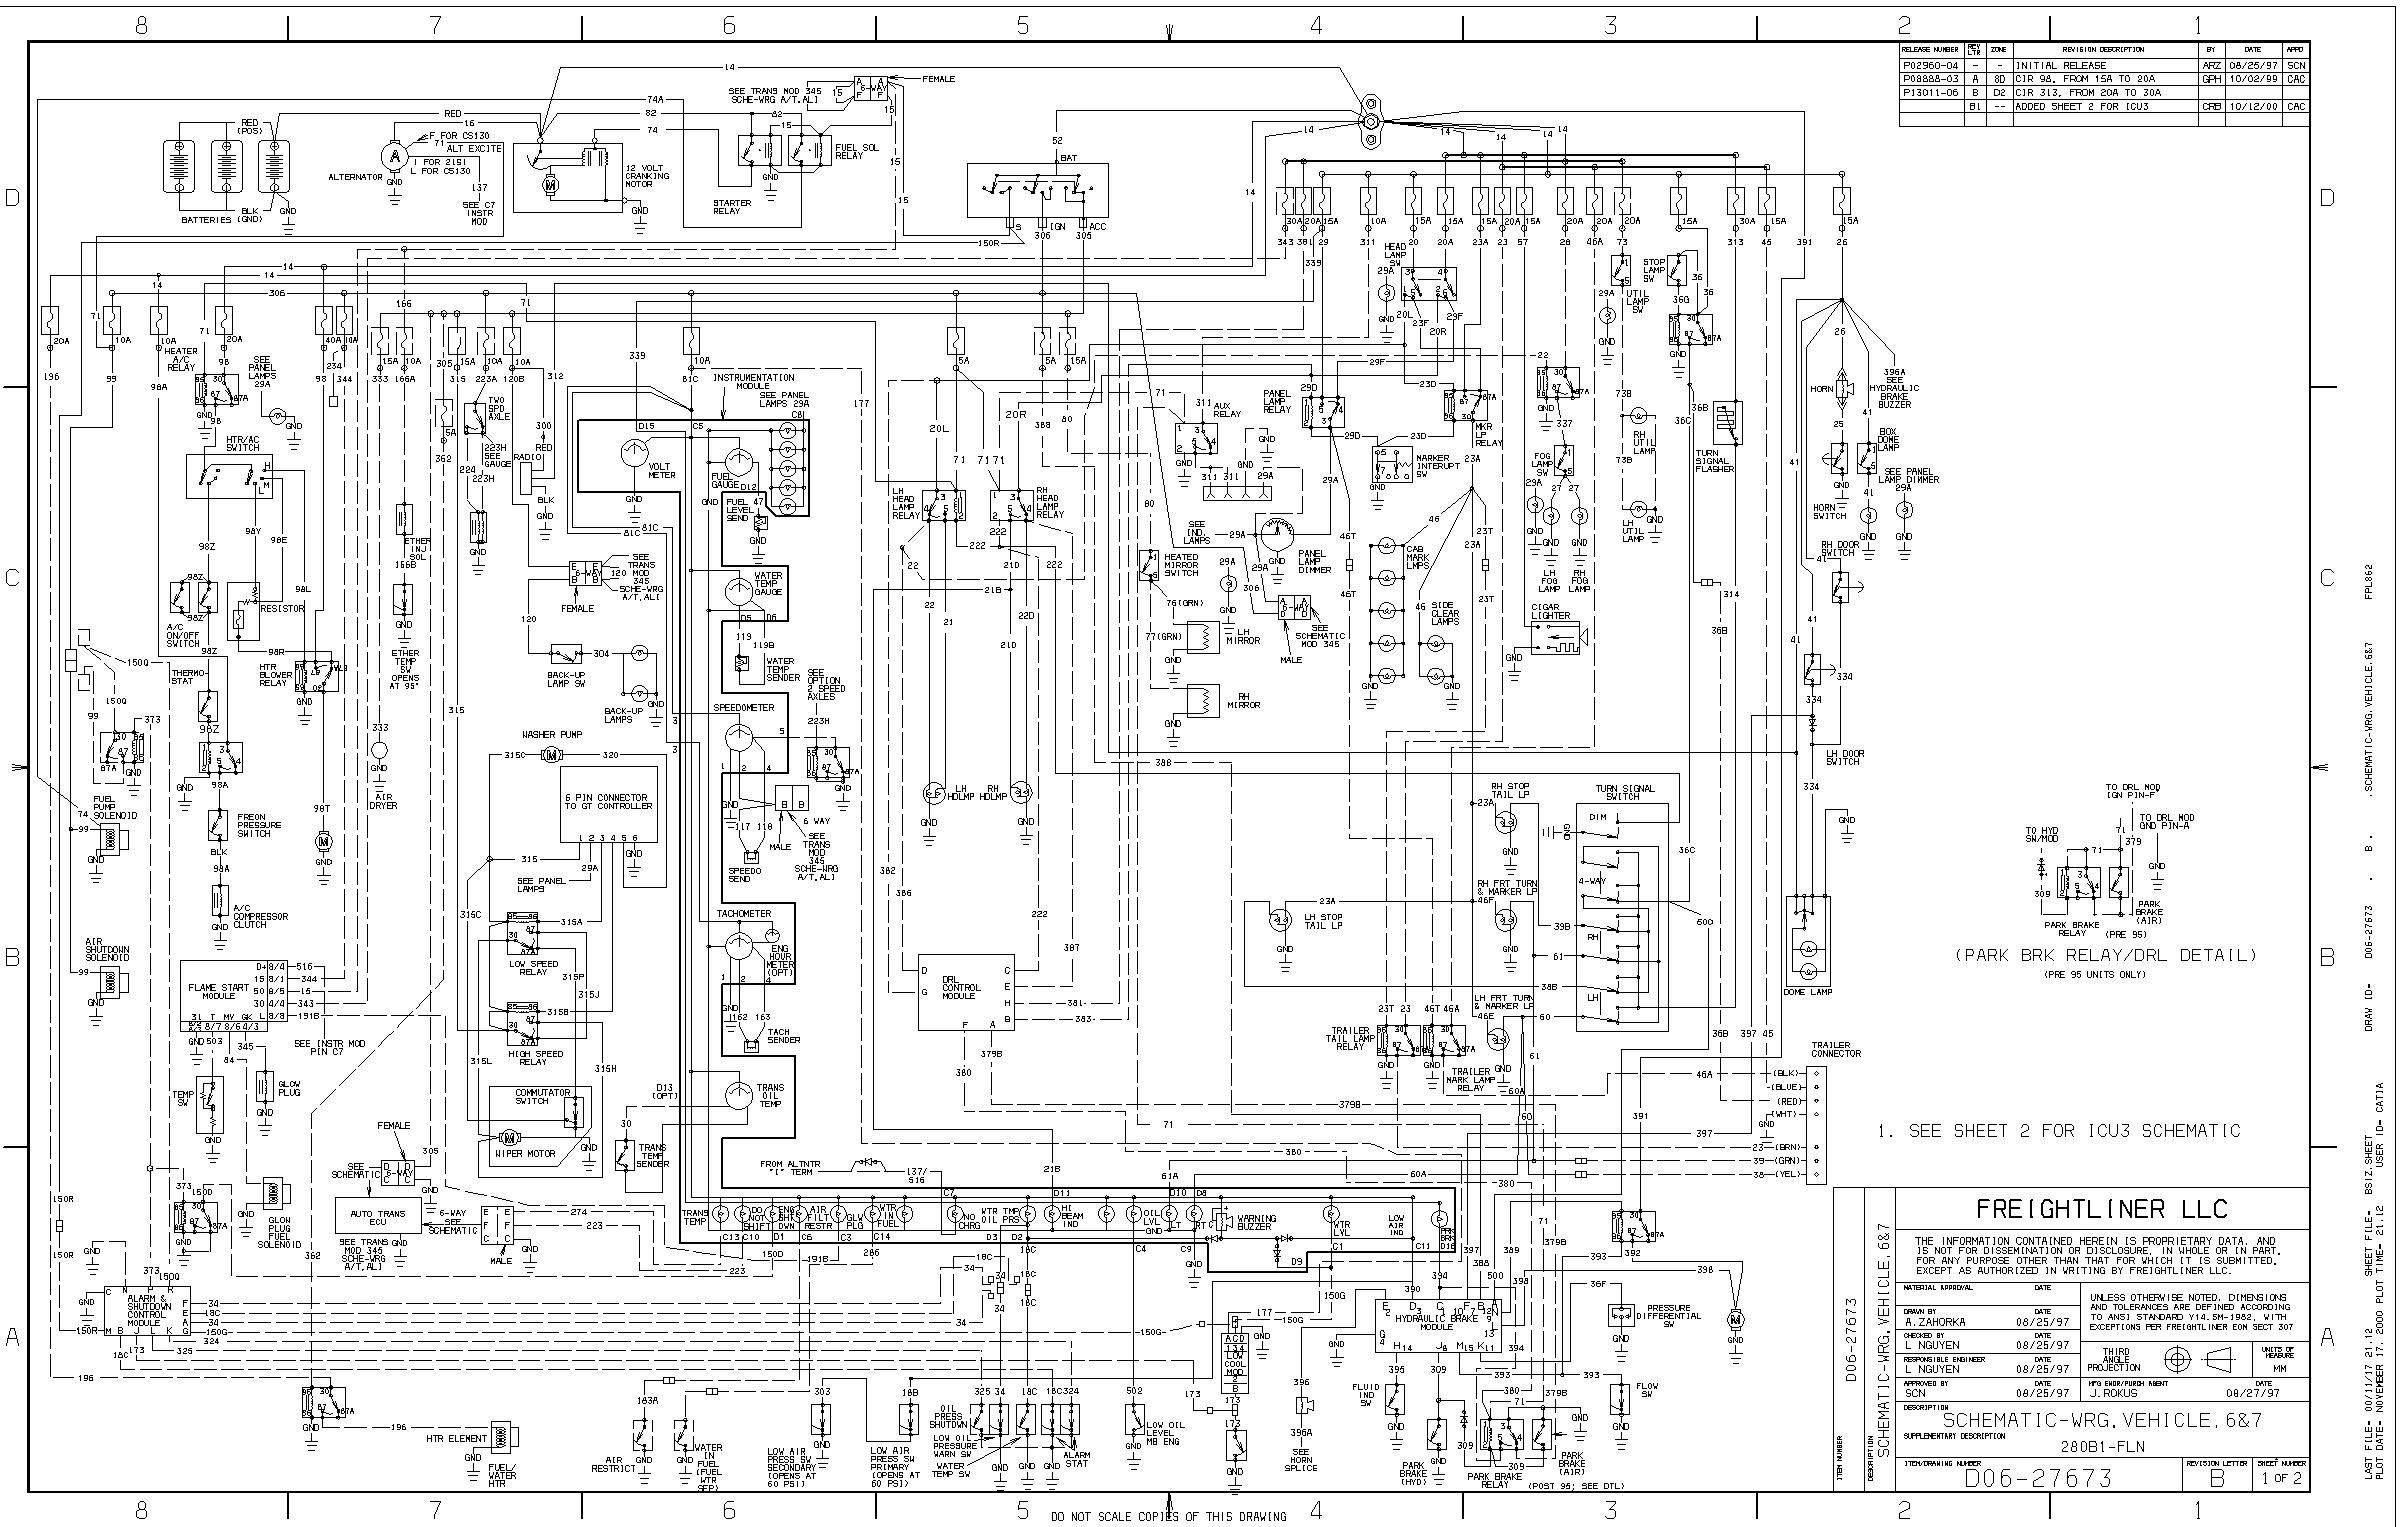 2001 Mercury Sable Engine Diagram Fuse Box Diagram Also Free Image About  Wiring Diagram and Schematic